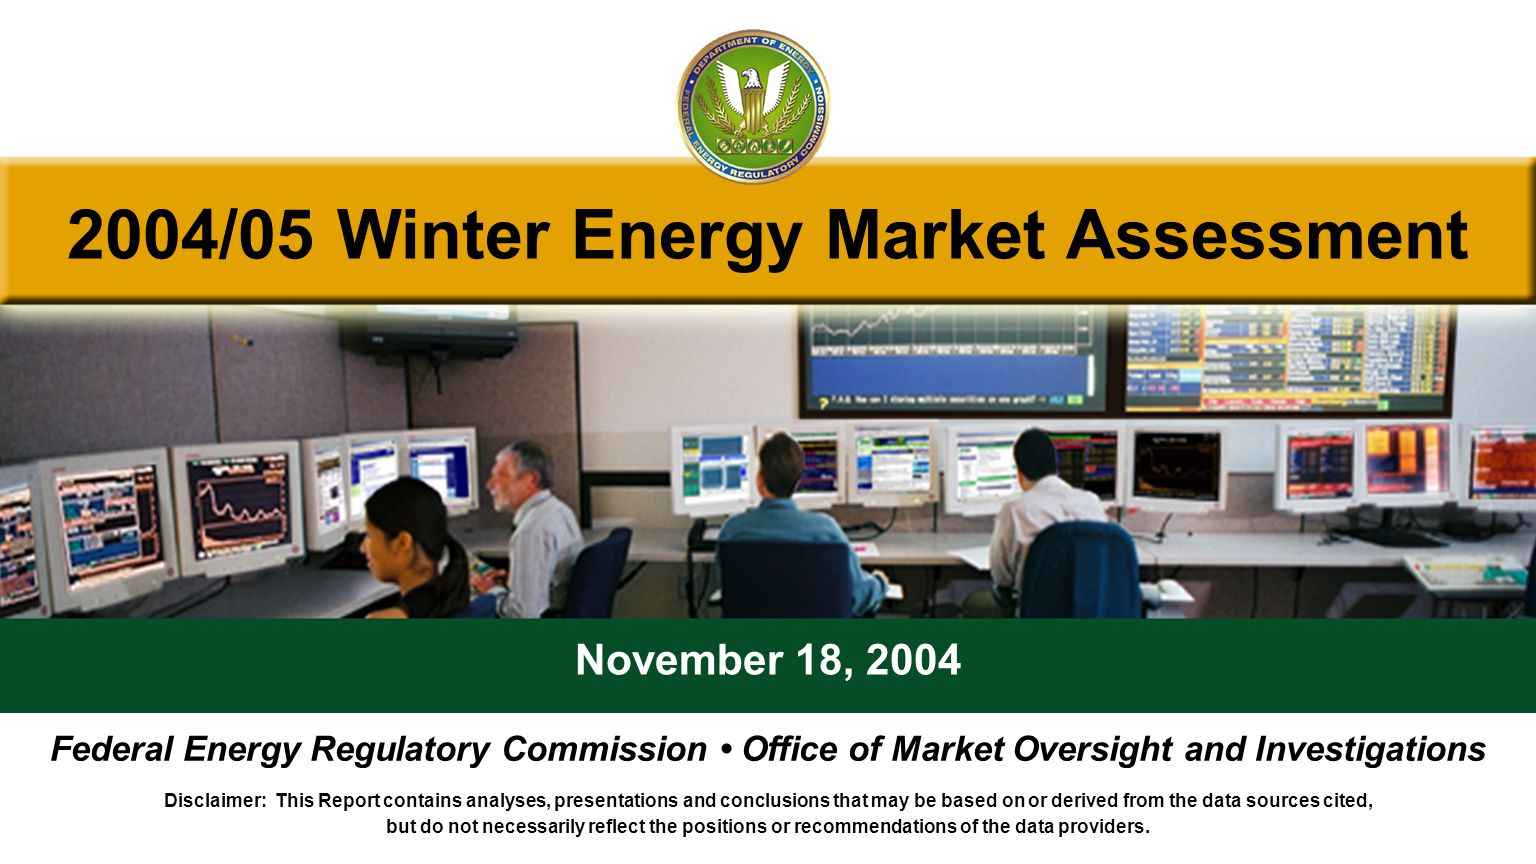 2004/05 Winter Energy Market Assessment November 18, 2004 Federal Energy Regulatory Commission Office of Market Oversight and Investigations Disclaimer: This Report contains analyses, presentations and conclusions that may be based on or derived from the data sources cited, but do not necessarily reflect the positions or recommendations of the data providers.